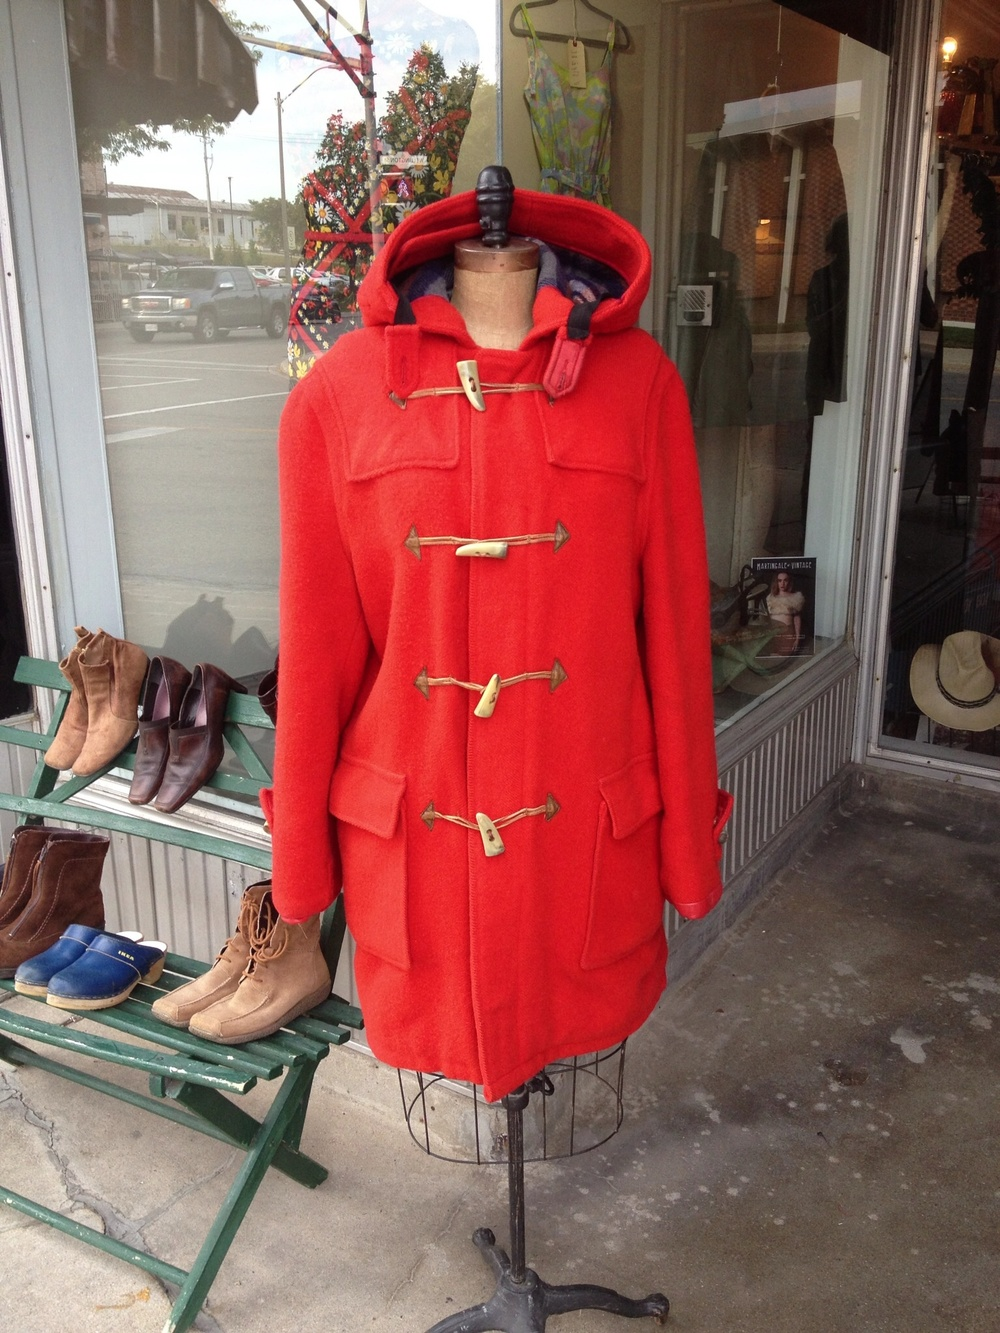 Vintage Hudson's Bay Coat, a dream, worn by a fellow, size Medium but fits me (12/16). Leather added to sleeve-ends to shore them up (red!). Long sleeves. Ridiculously beautiful. I've never seen a Duffle before by HB. $250.